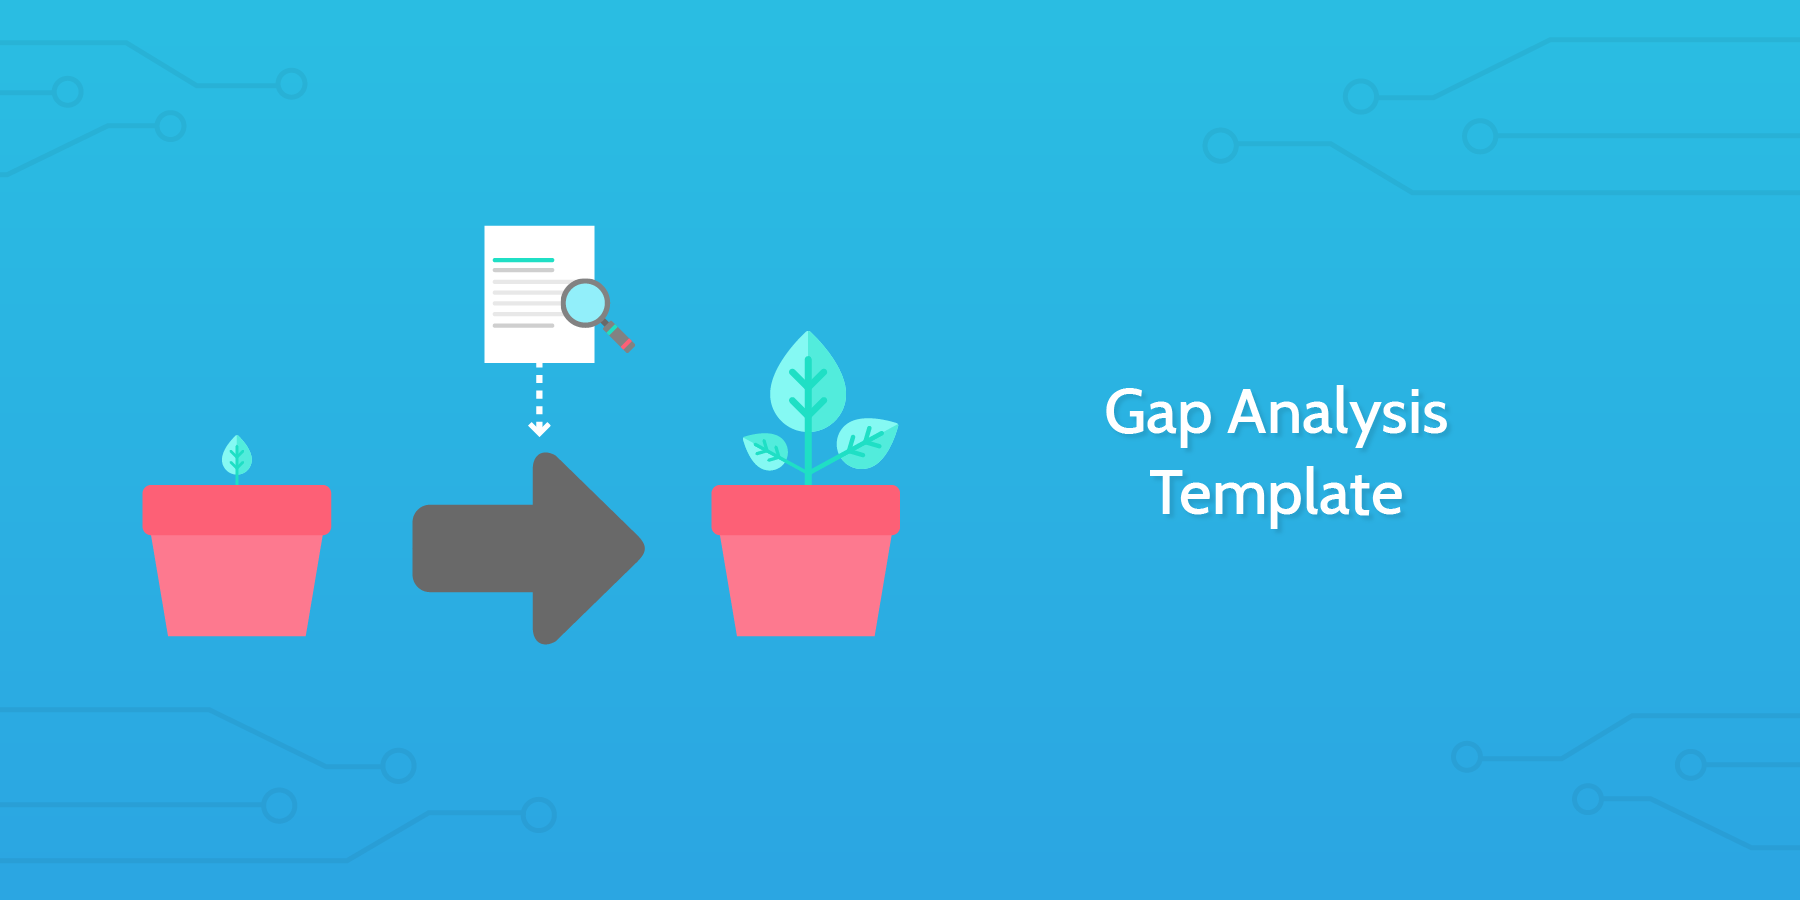 Introduction to the Gap Analysis Template: